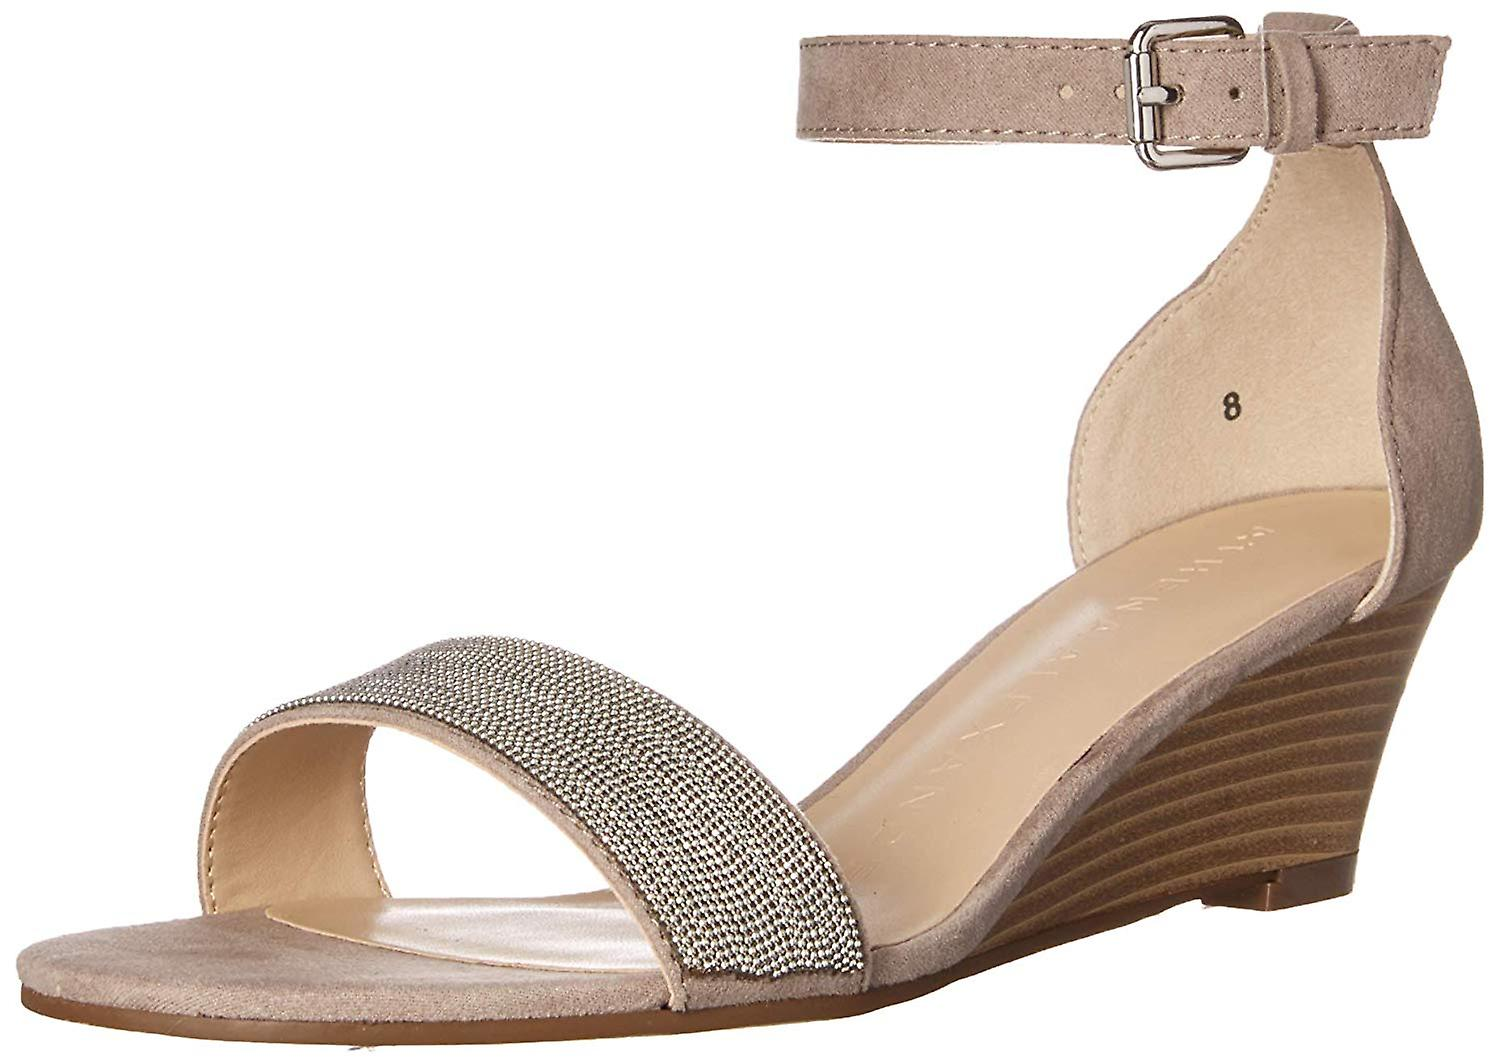 Athena Alexander Womens Enfield Open Toe Casual Ankle Strap Sandals